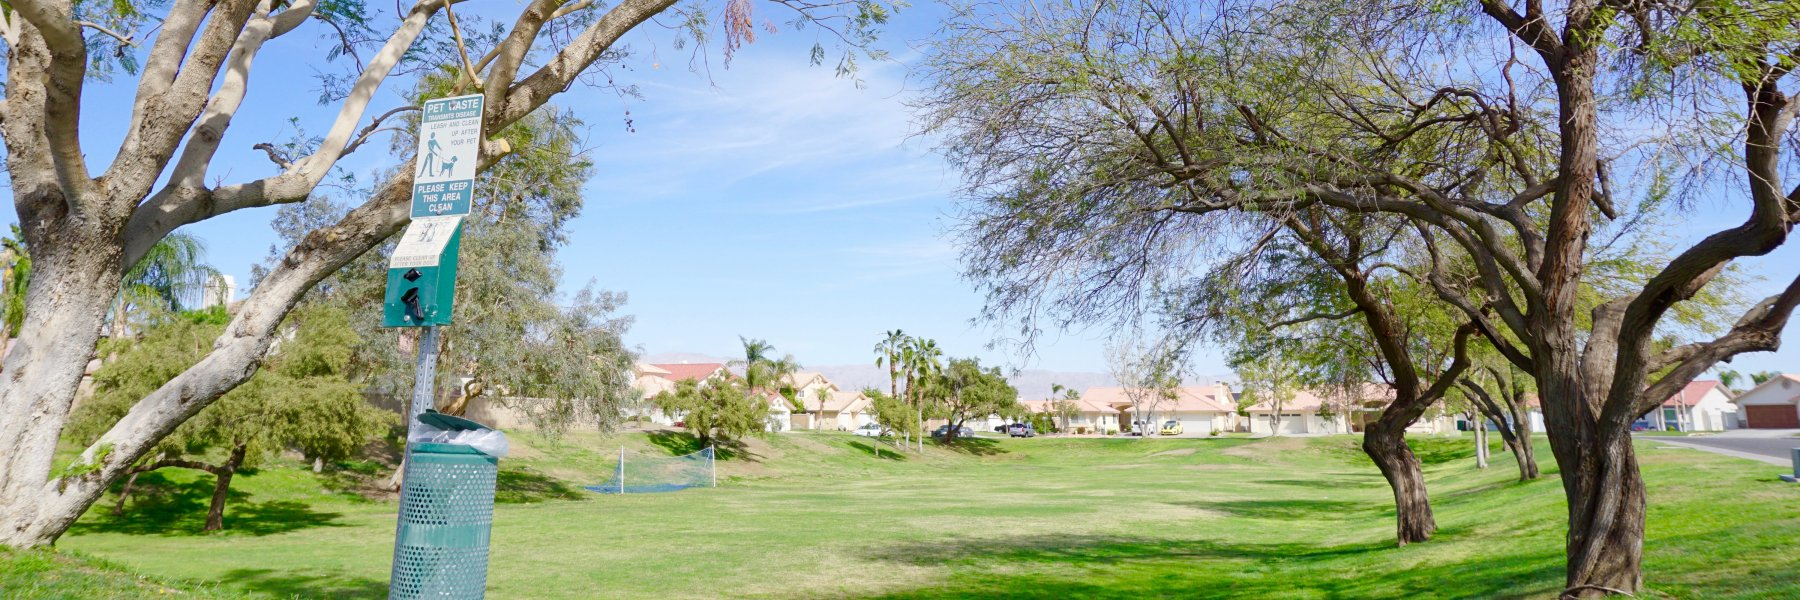 Rincon is a community of homes in Indio California